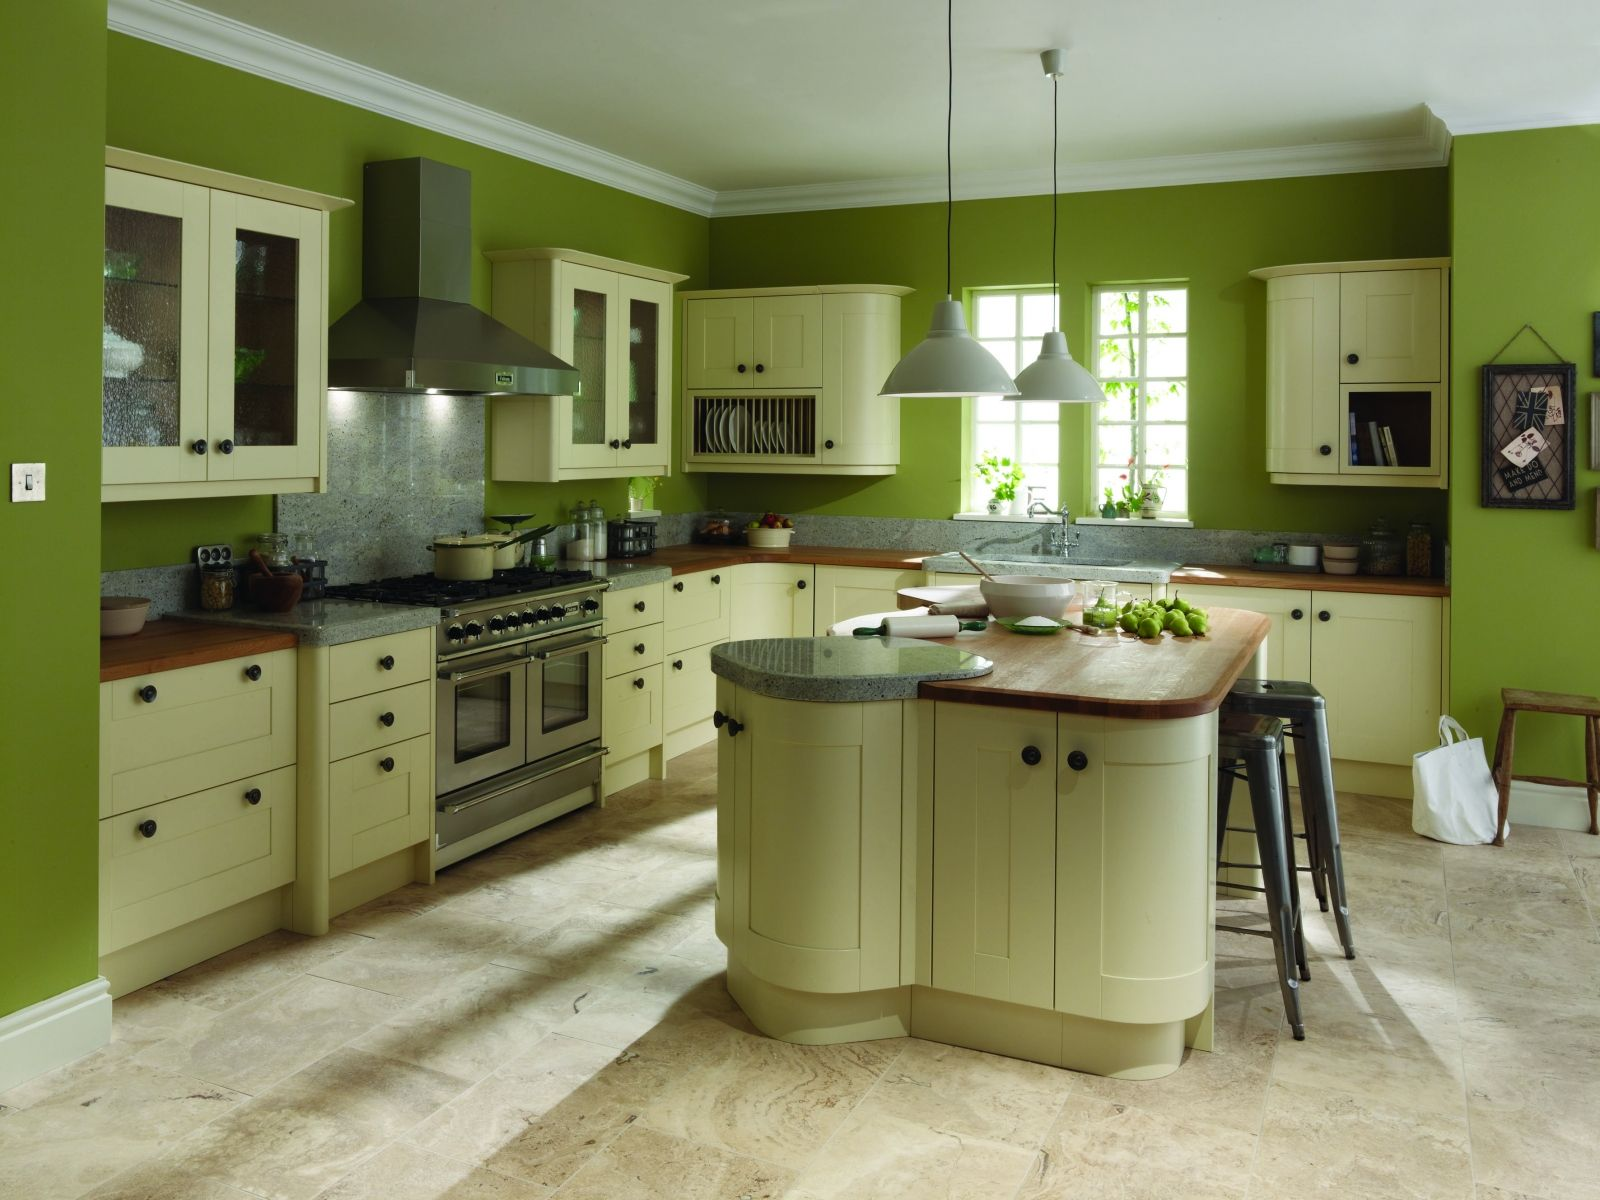 Green kitchen walls for fresh and natural looking kitchen blue